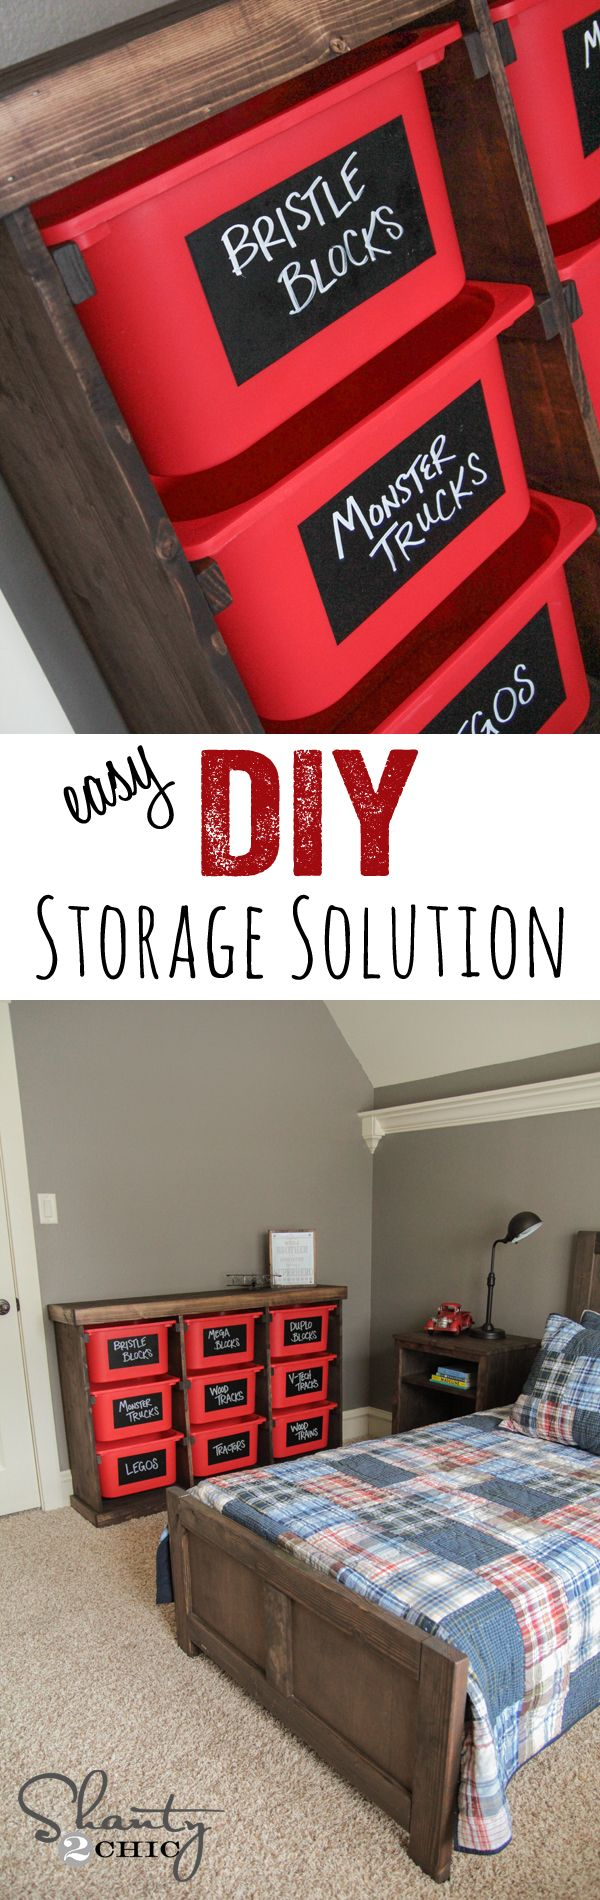 DIY Storage Idea… LOVE this for toys or anything! Cheap and easy too! www.shanty-2-chic.com